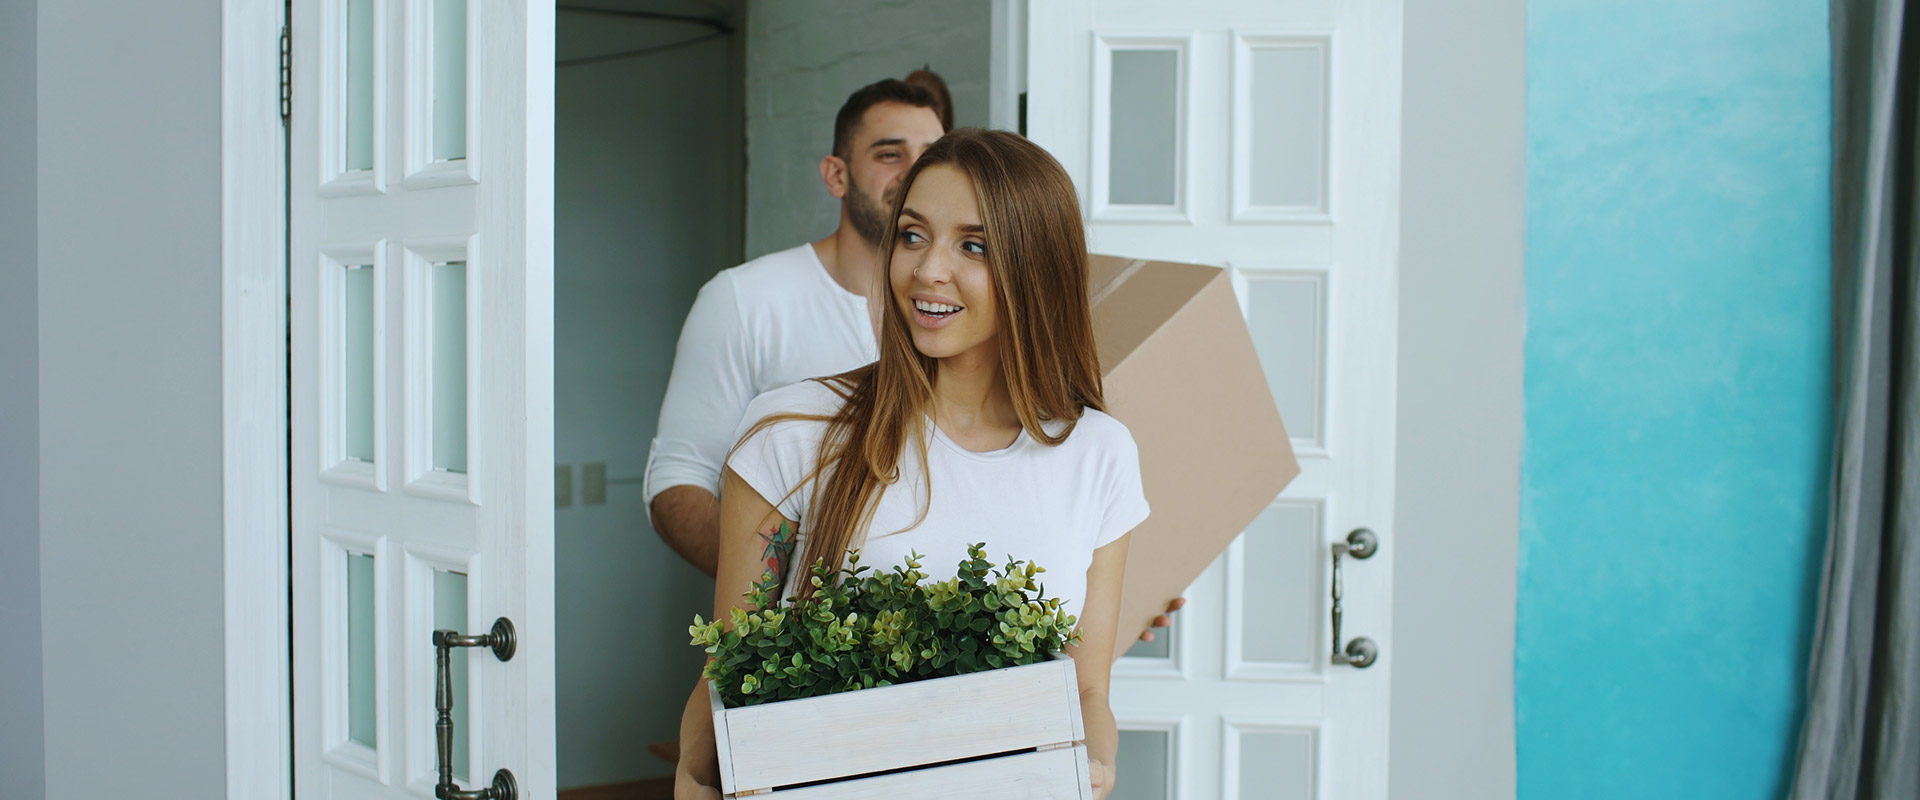 Reasons to Arrive at Your New Home Before the Movers